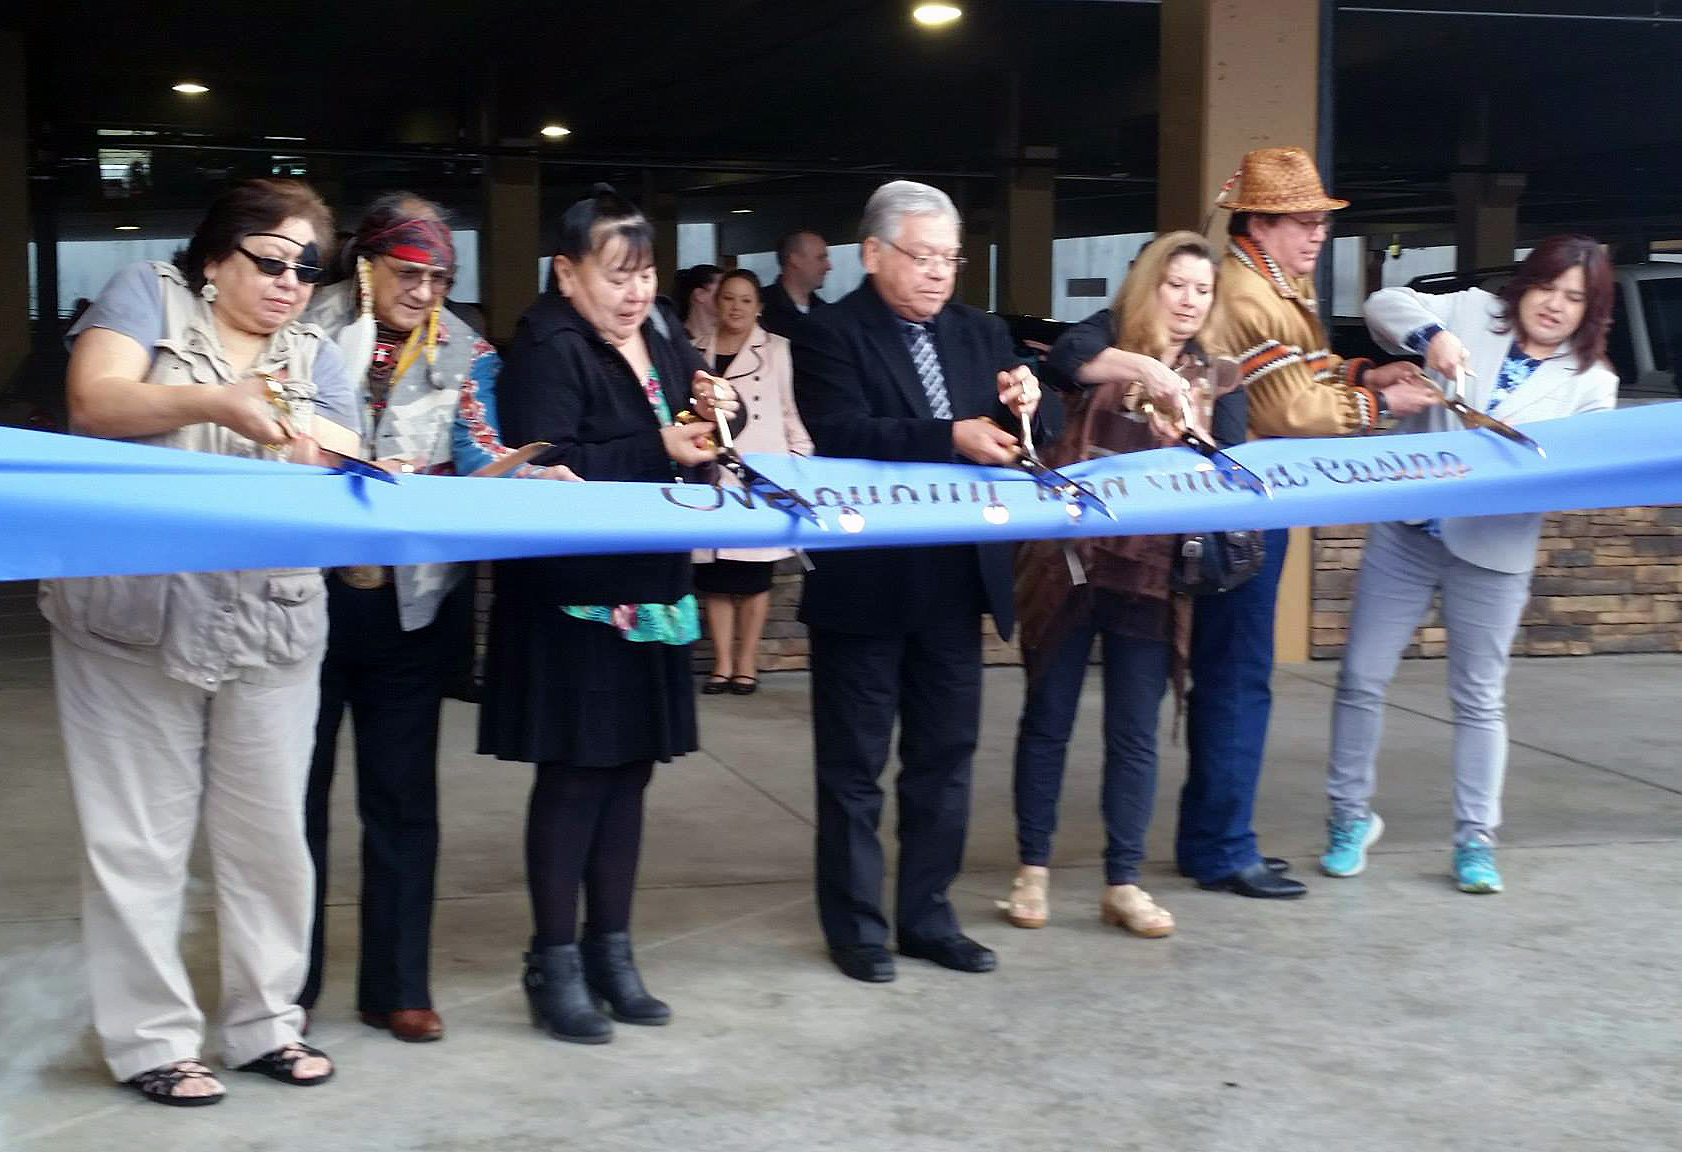 Nisqually Tribe welcomes public to non-smoking area at casino